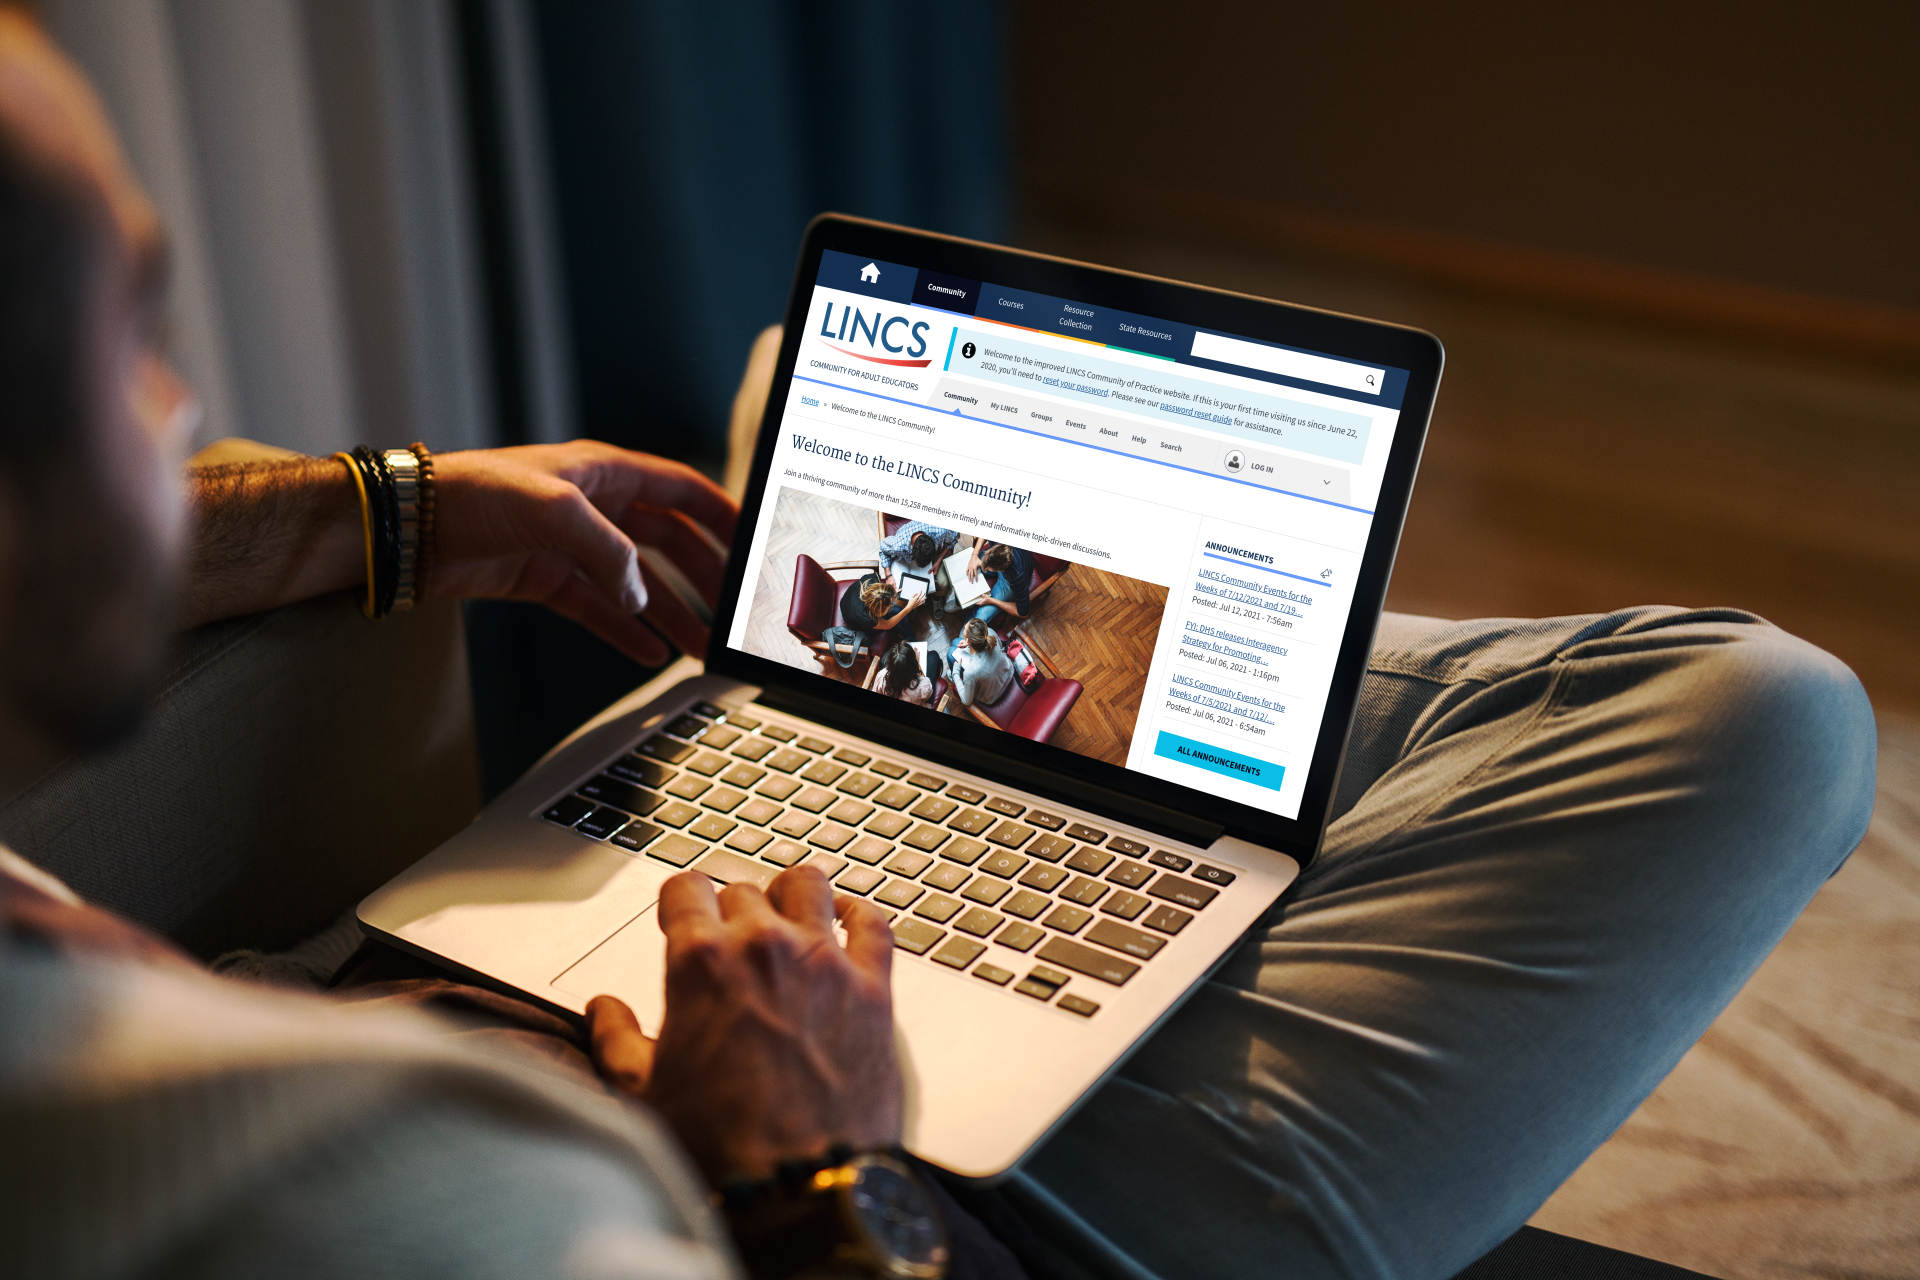 Education practitioner using the LINCS community portal on a laptop